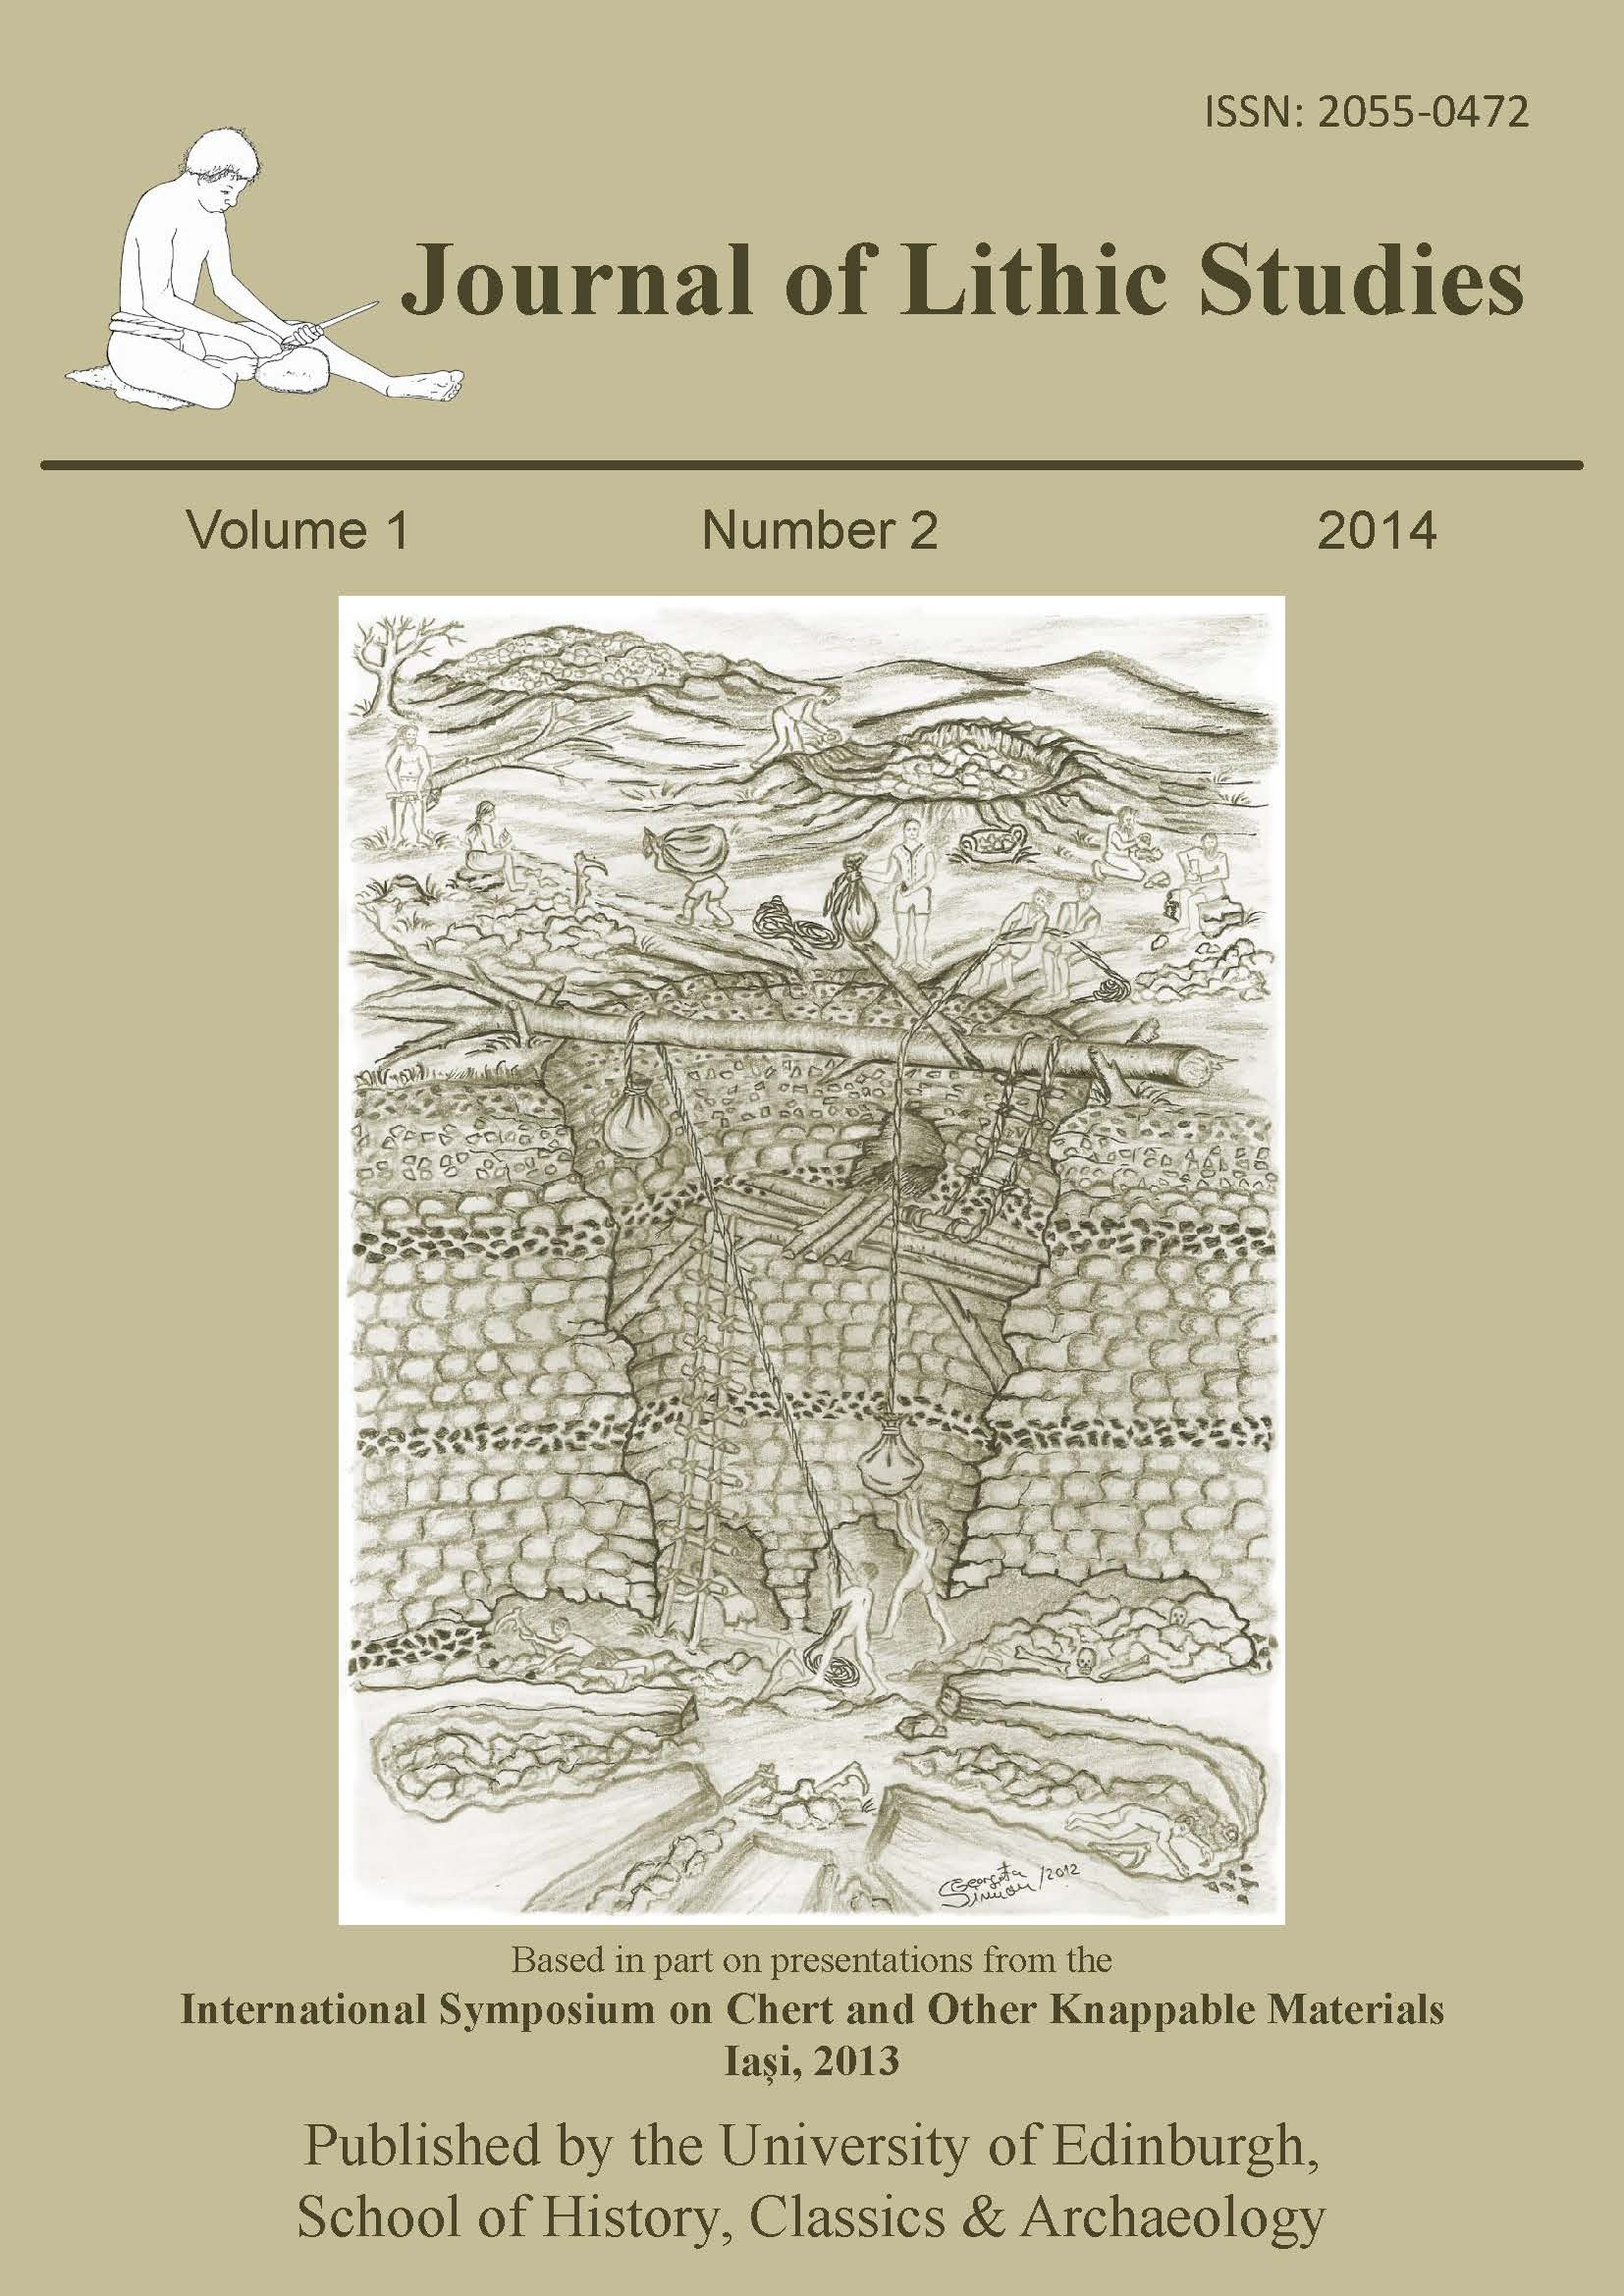 Journal of Lithic Studies, Vol. 1, Nr. 2